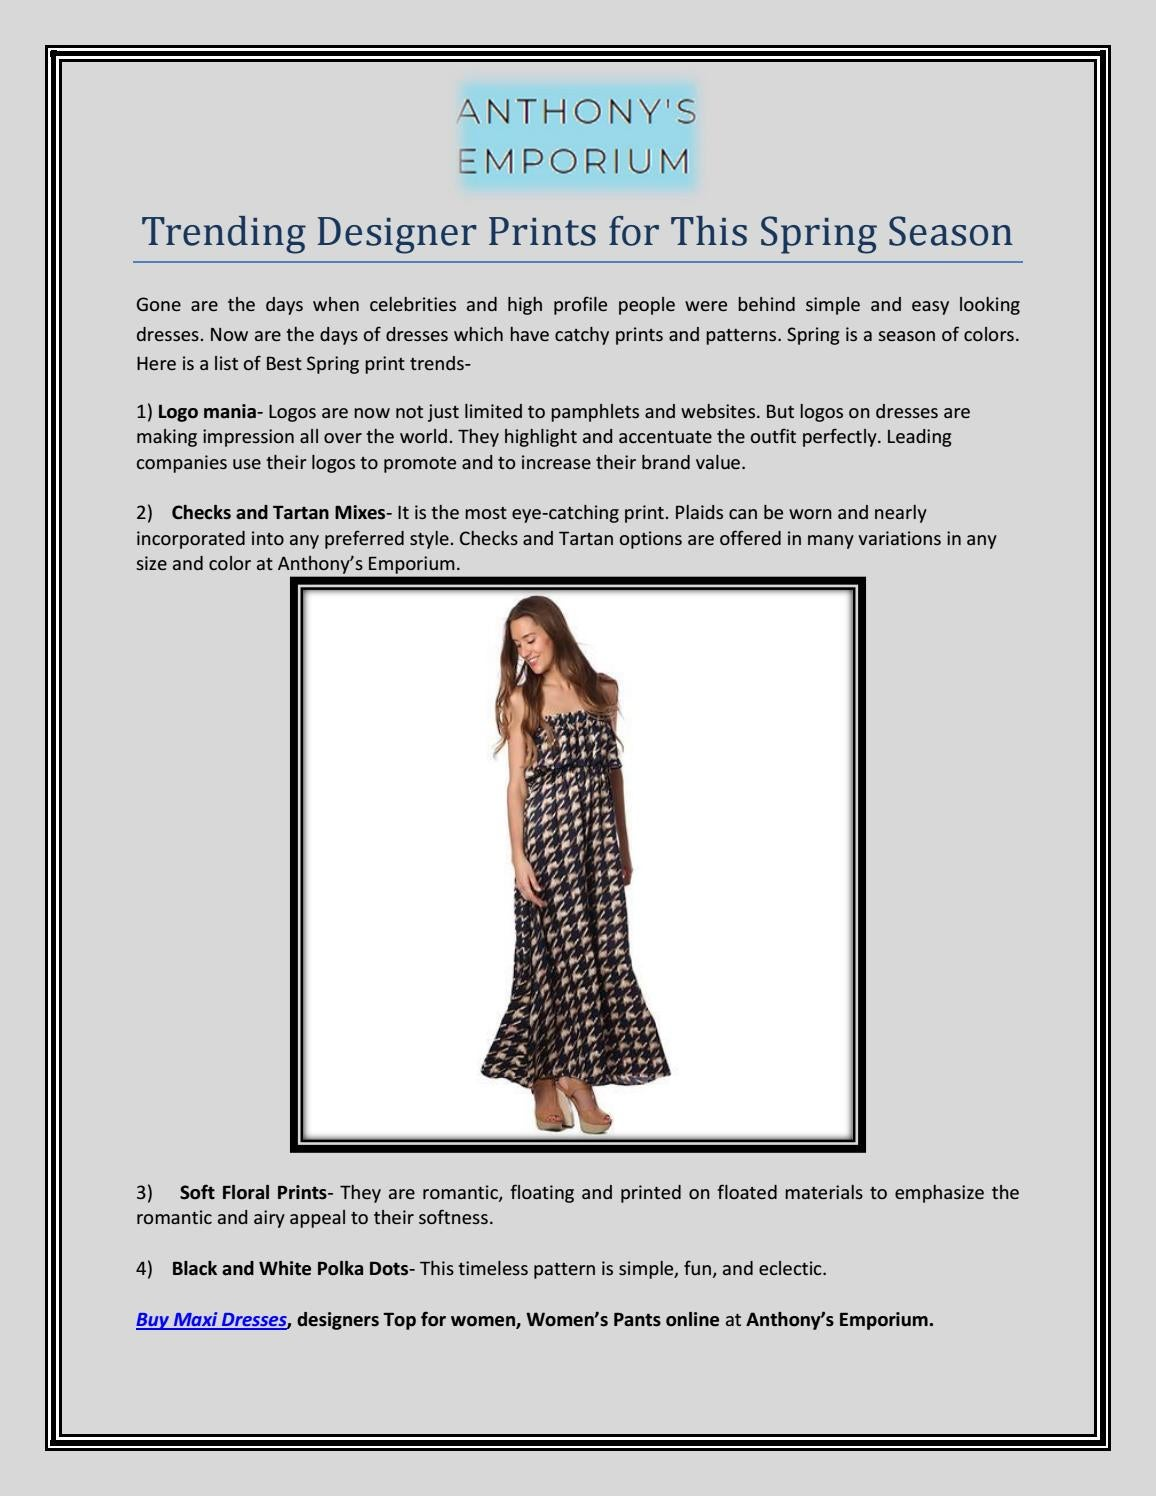 Trending Designer Prints for This Spring Season by ANTHONY'S